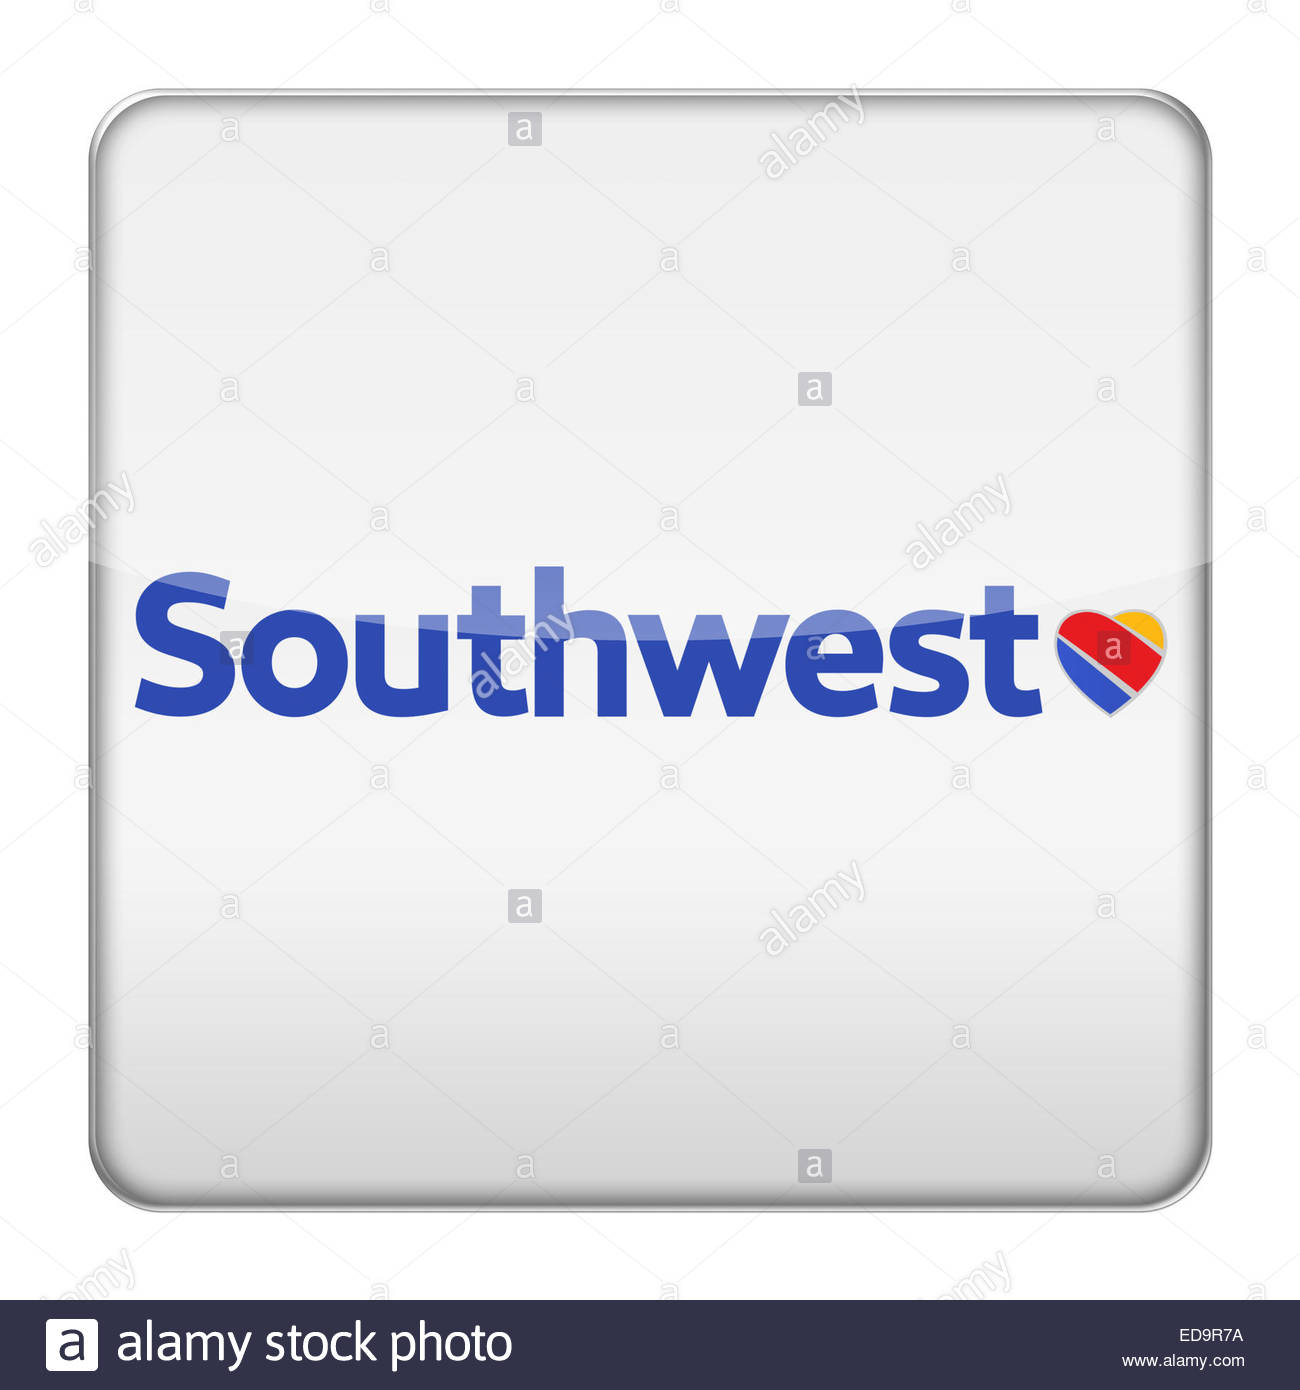 Southwest American Airline logo icon - Stock Image